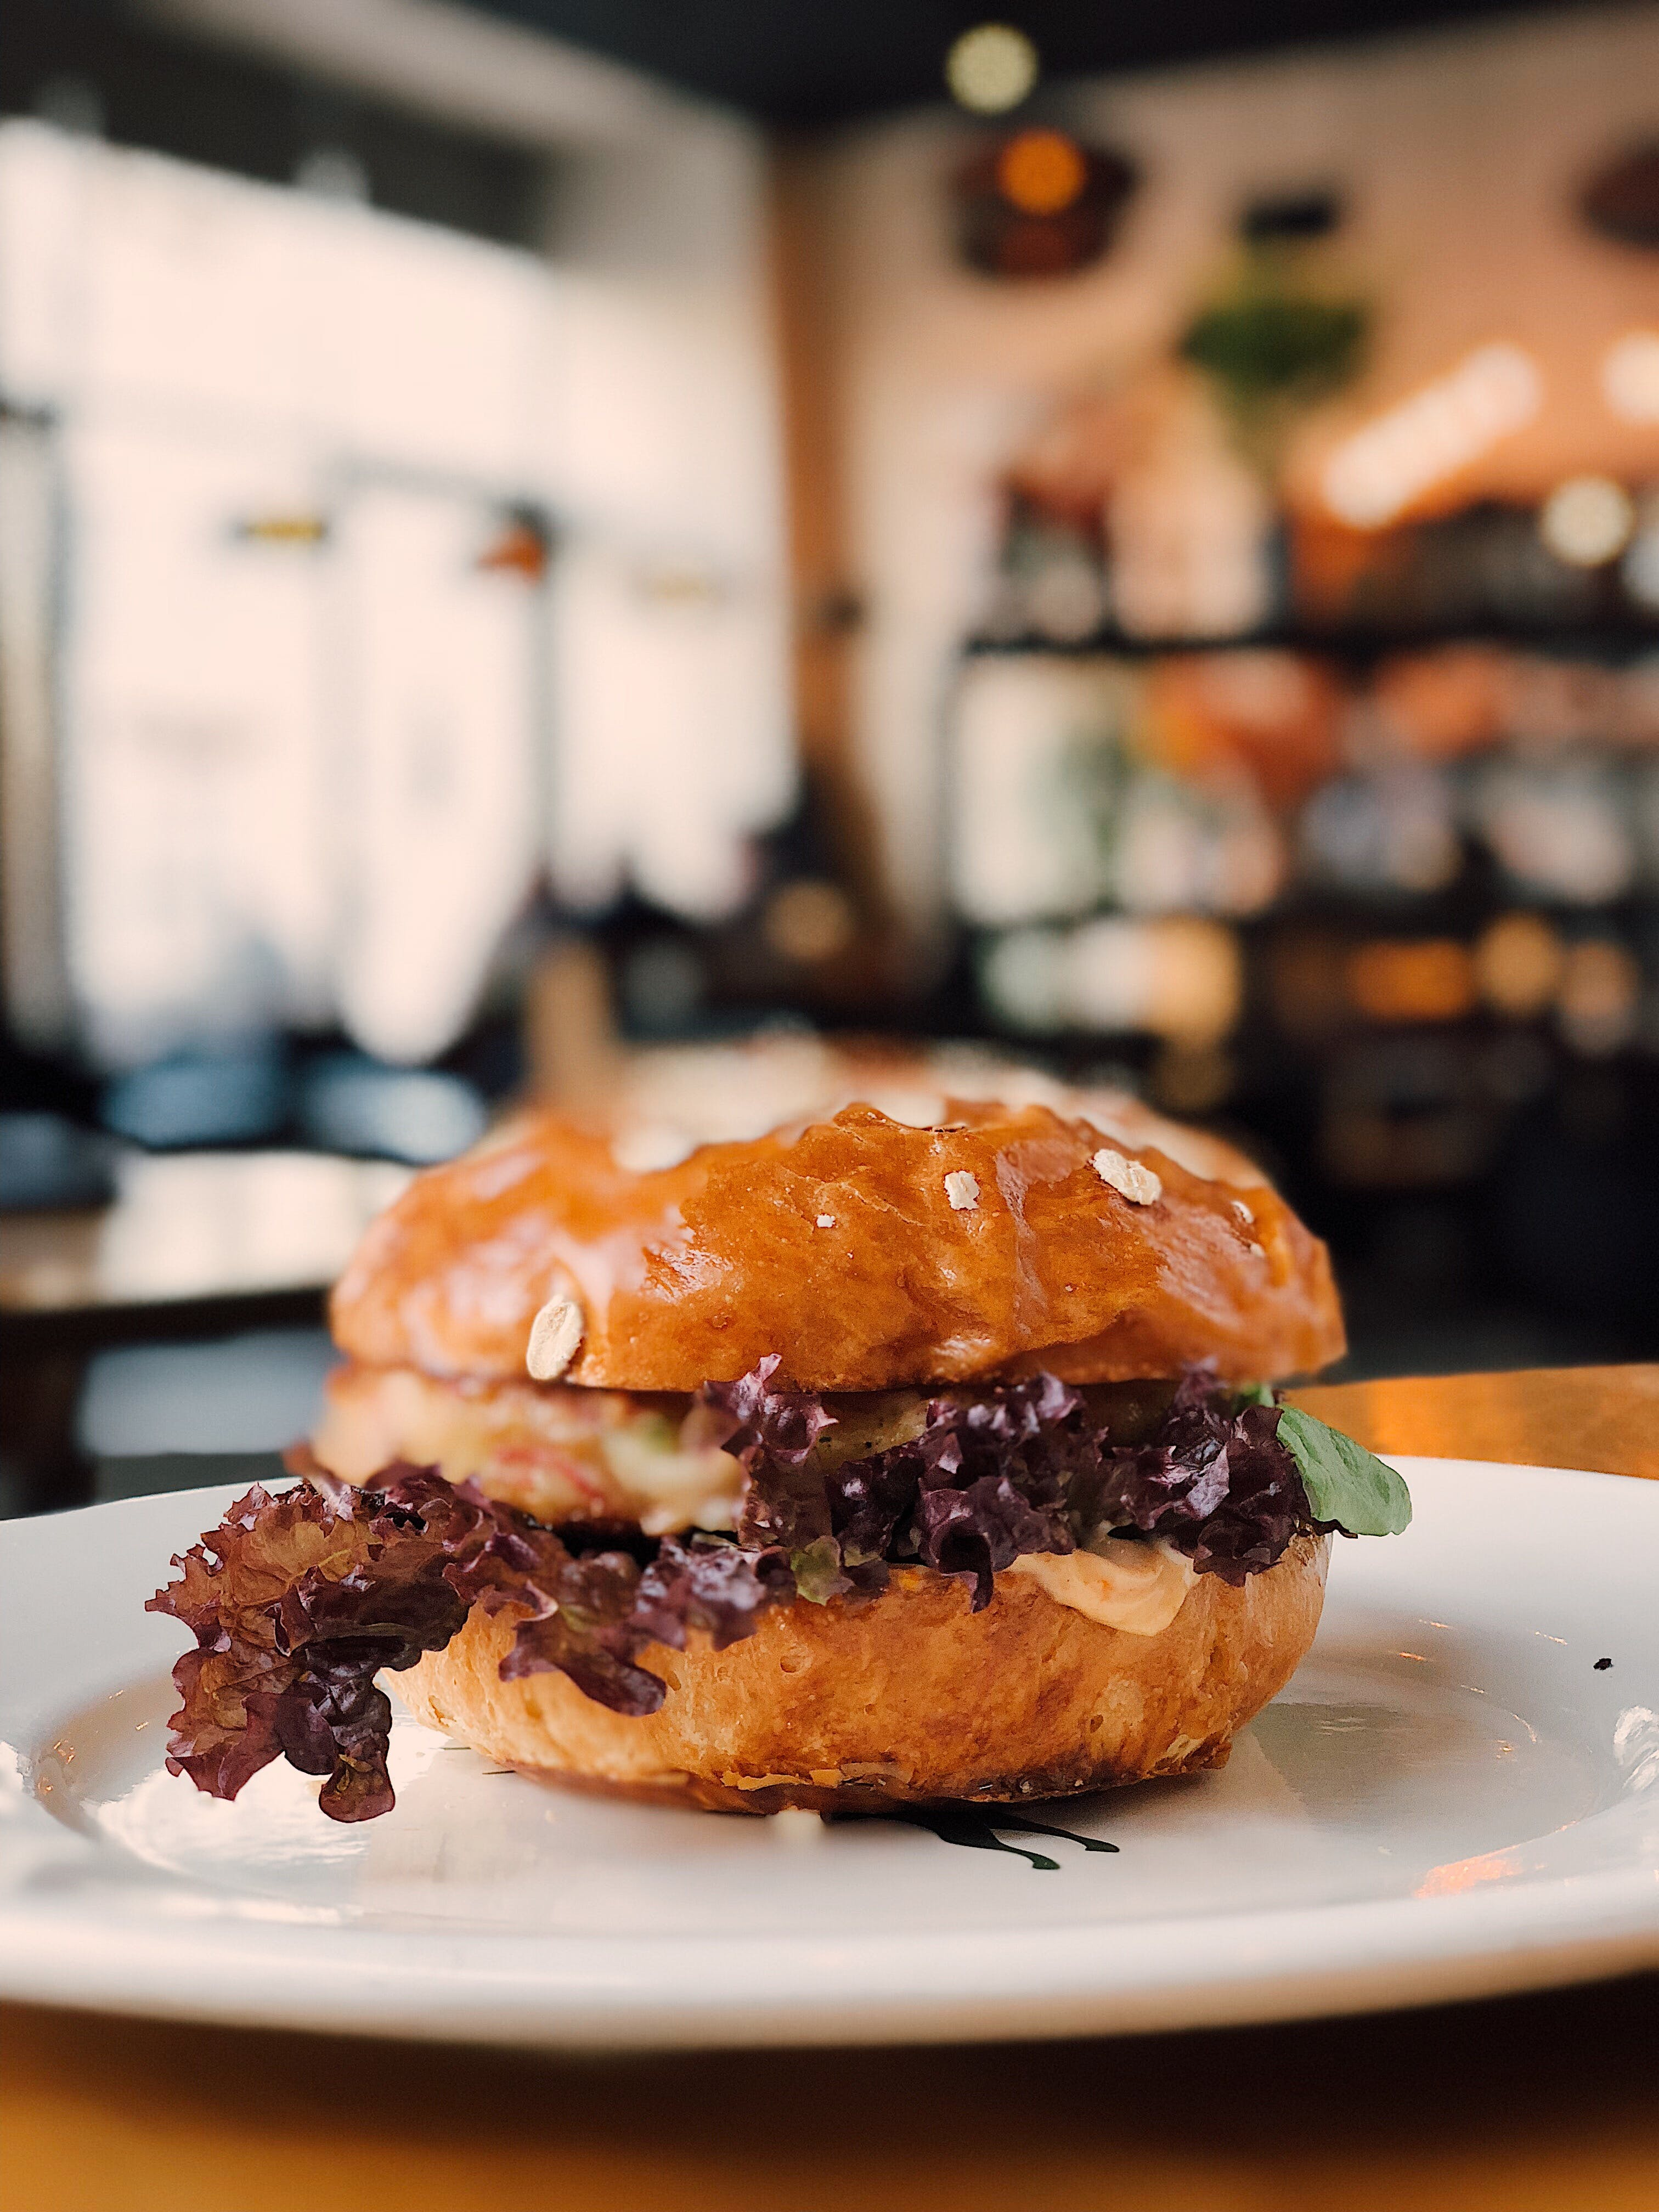 Selective Focus Photography of Burger on White Ceramic Plate